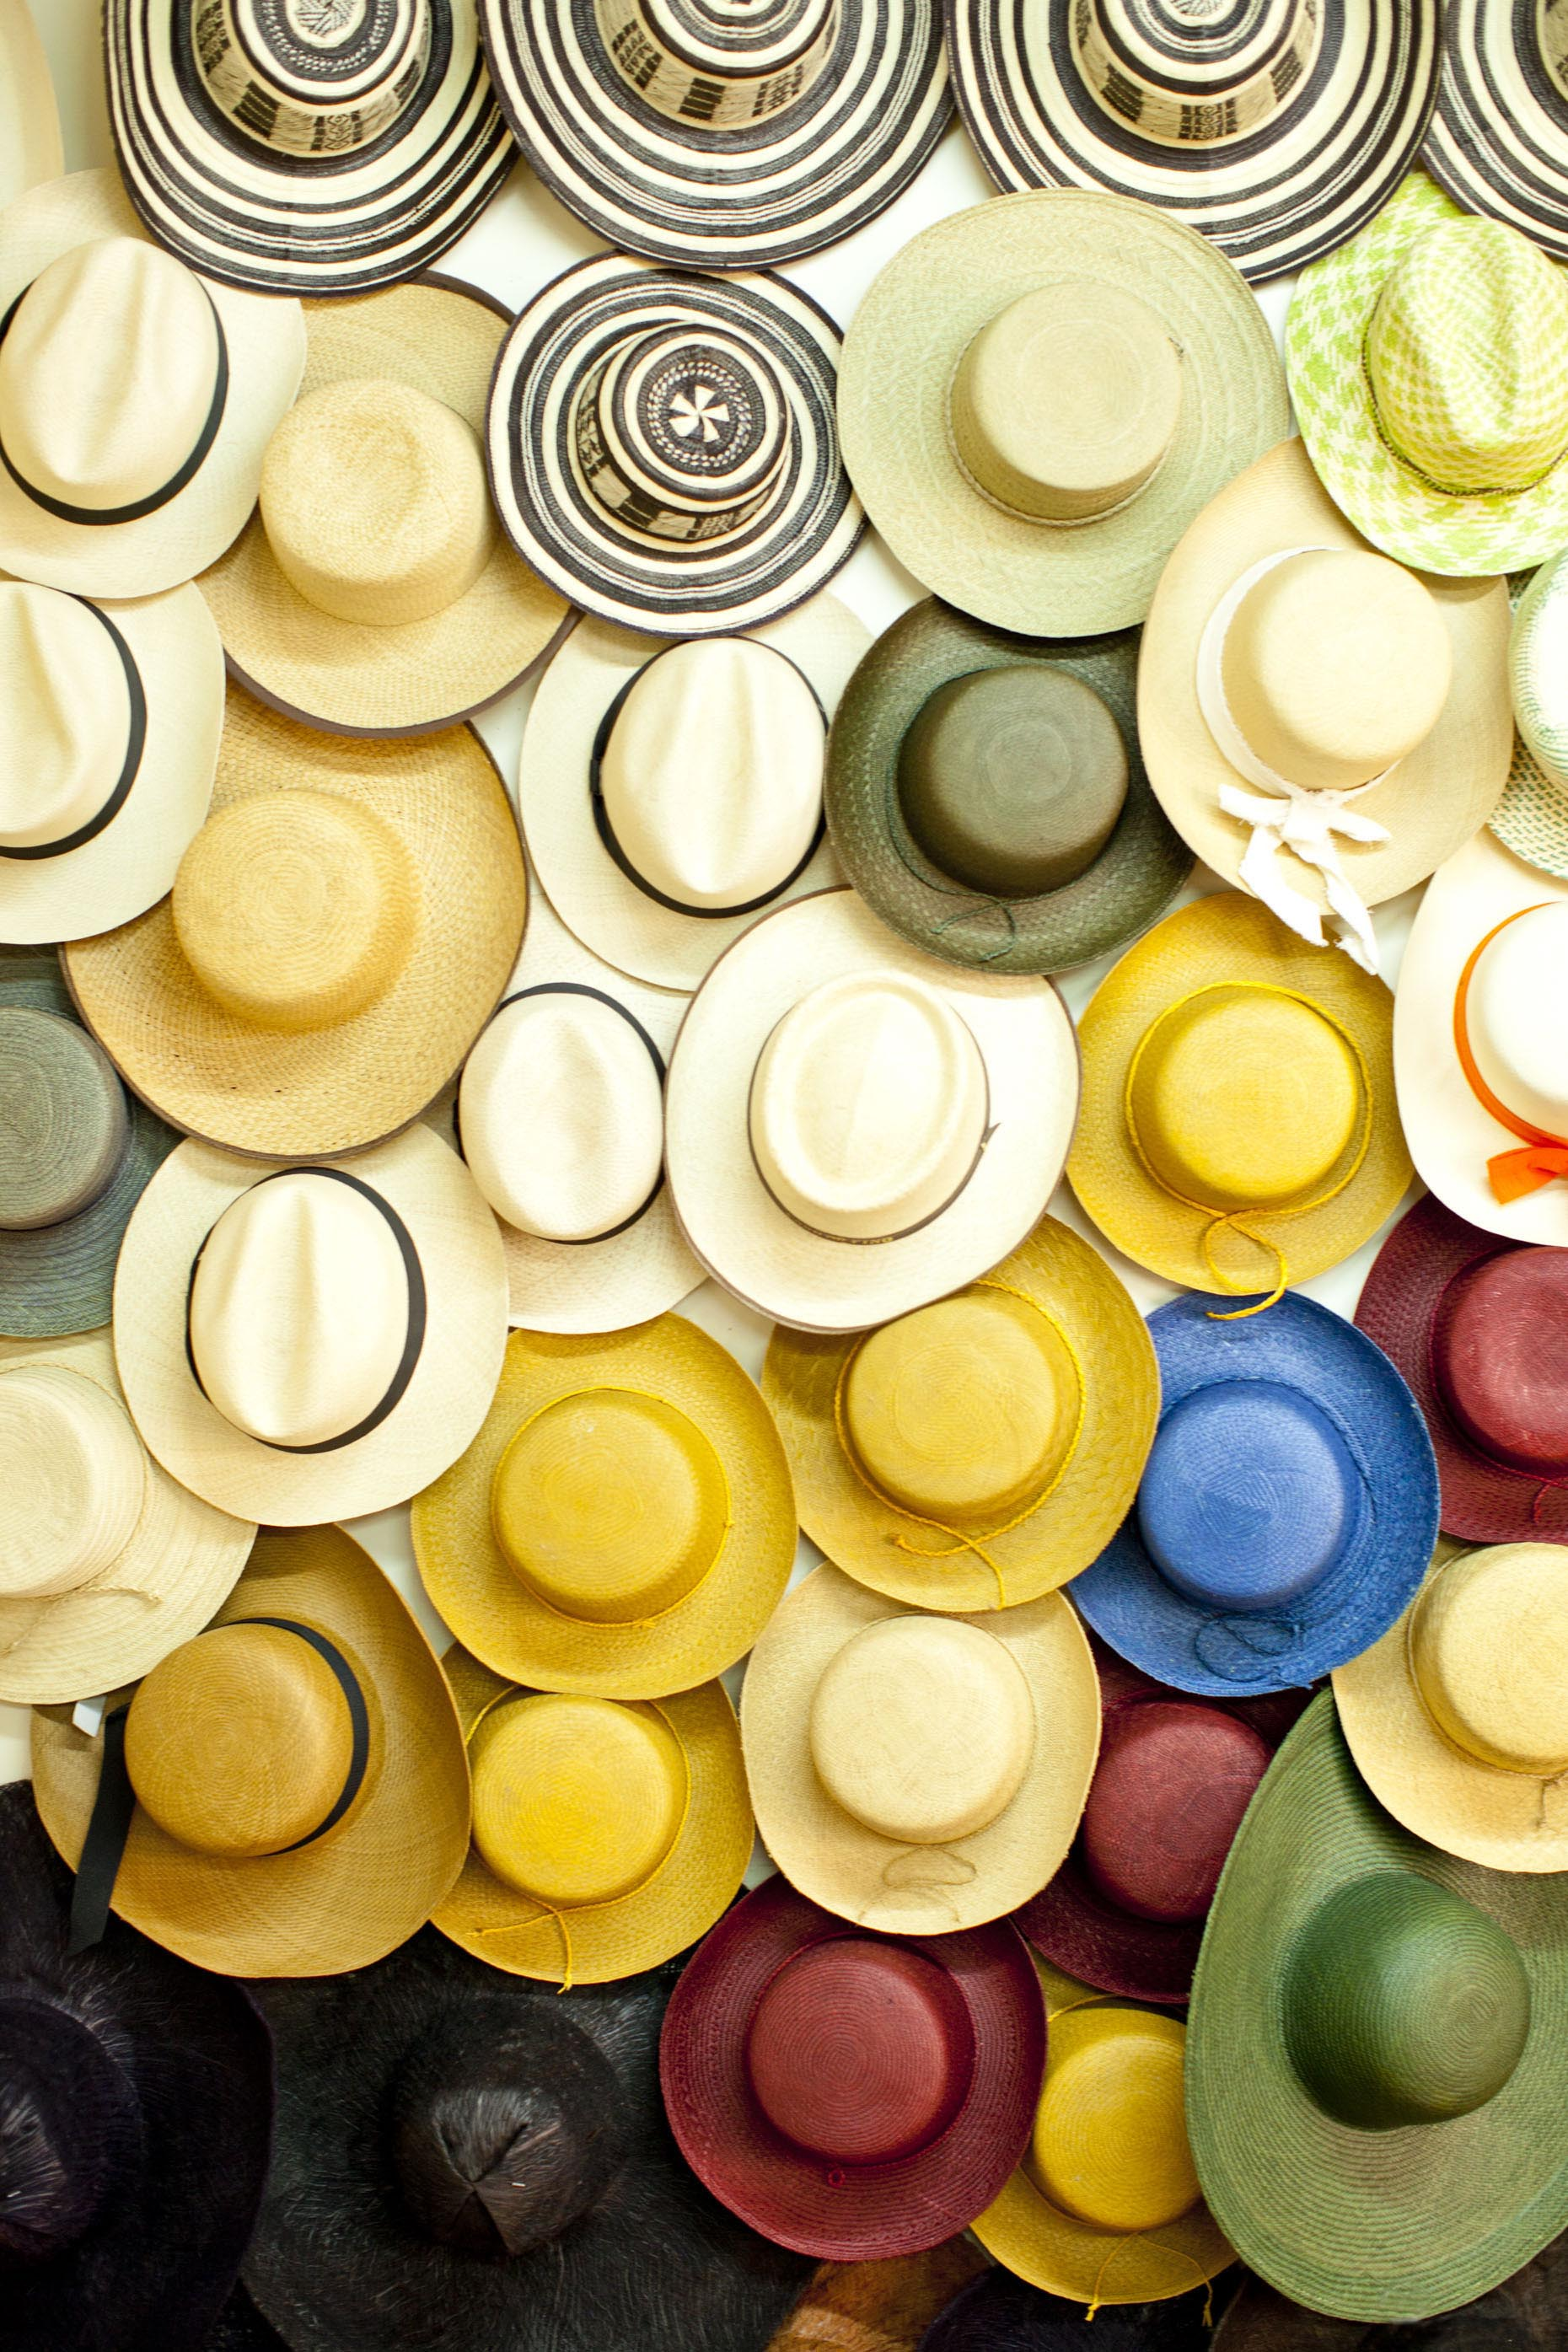 Colorful-hat-display-Bogota-Colombia-Inti-St-Clair-is201202151951